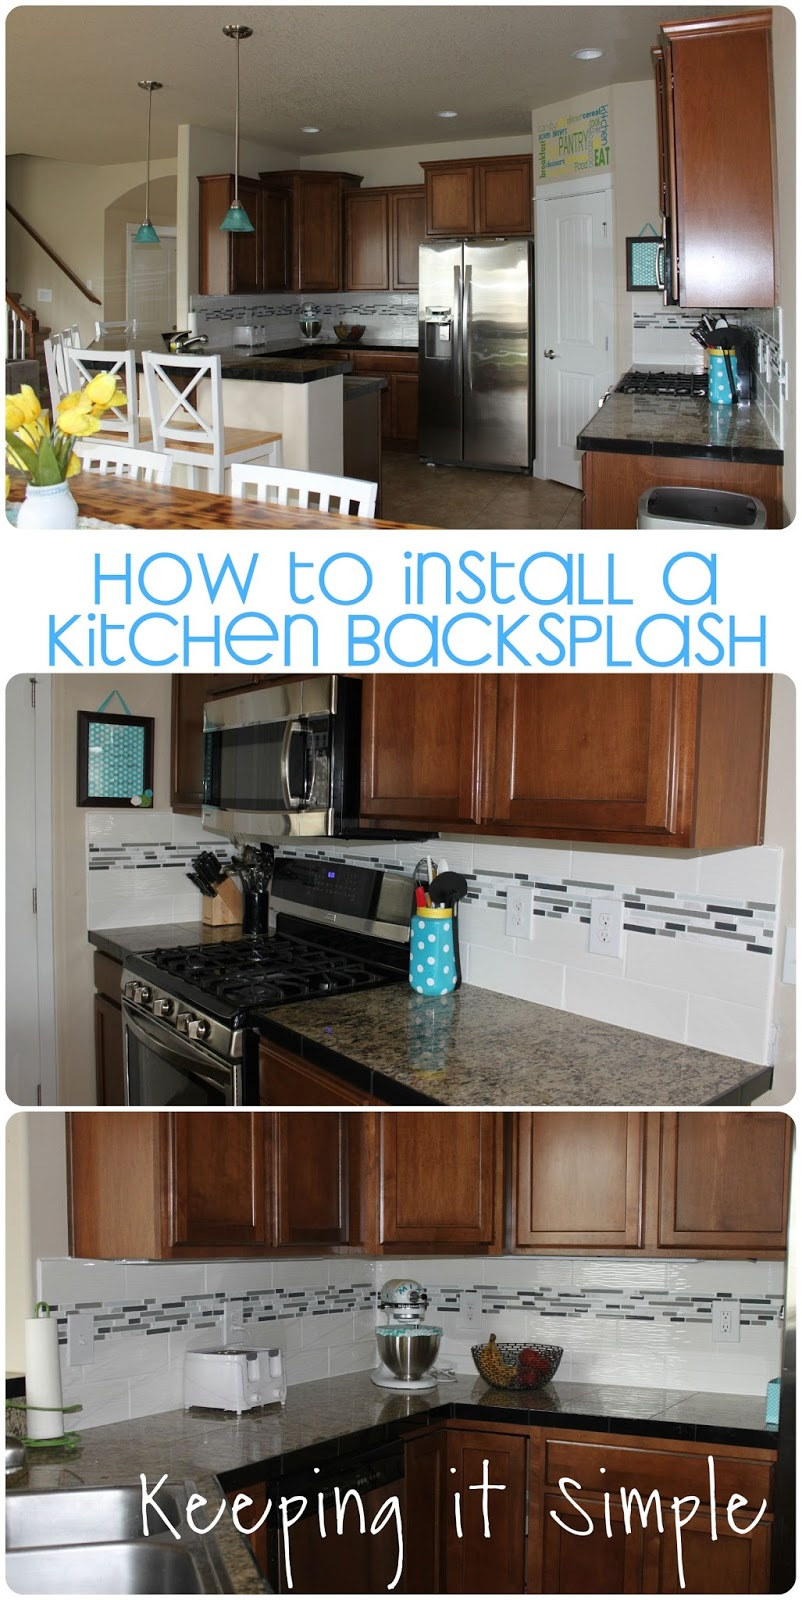 How To Install A Kitchen Back Splash With Wavecrest And Mosaic Tile Using  Sticky Mat